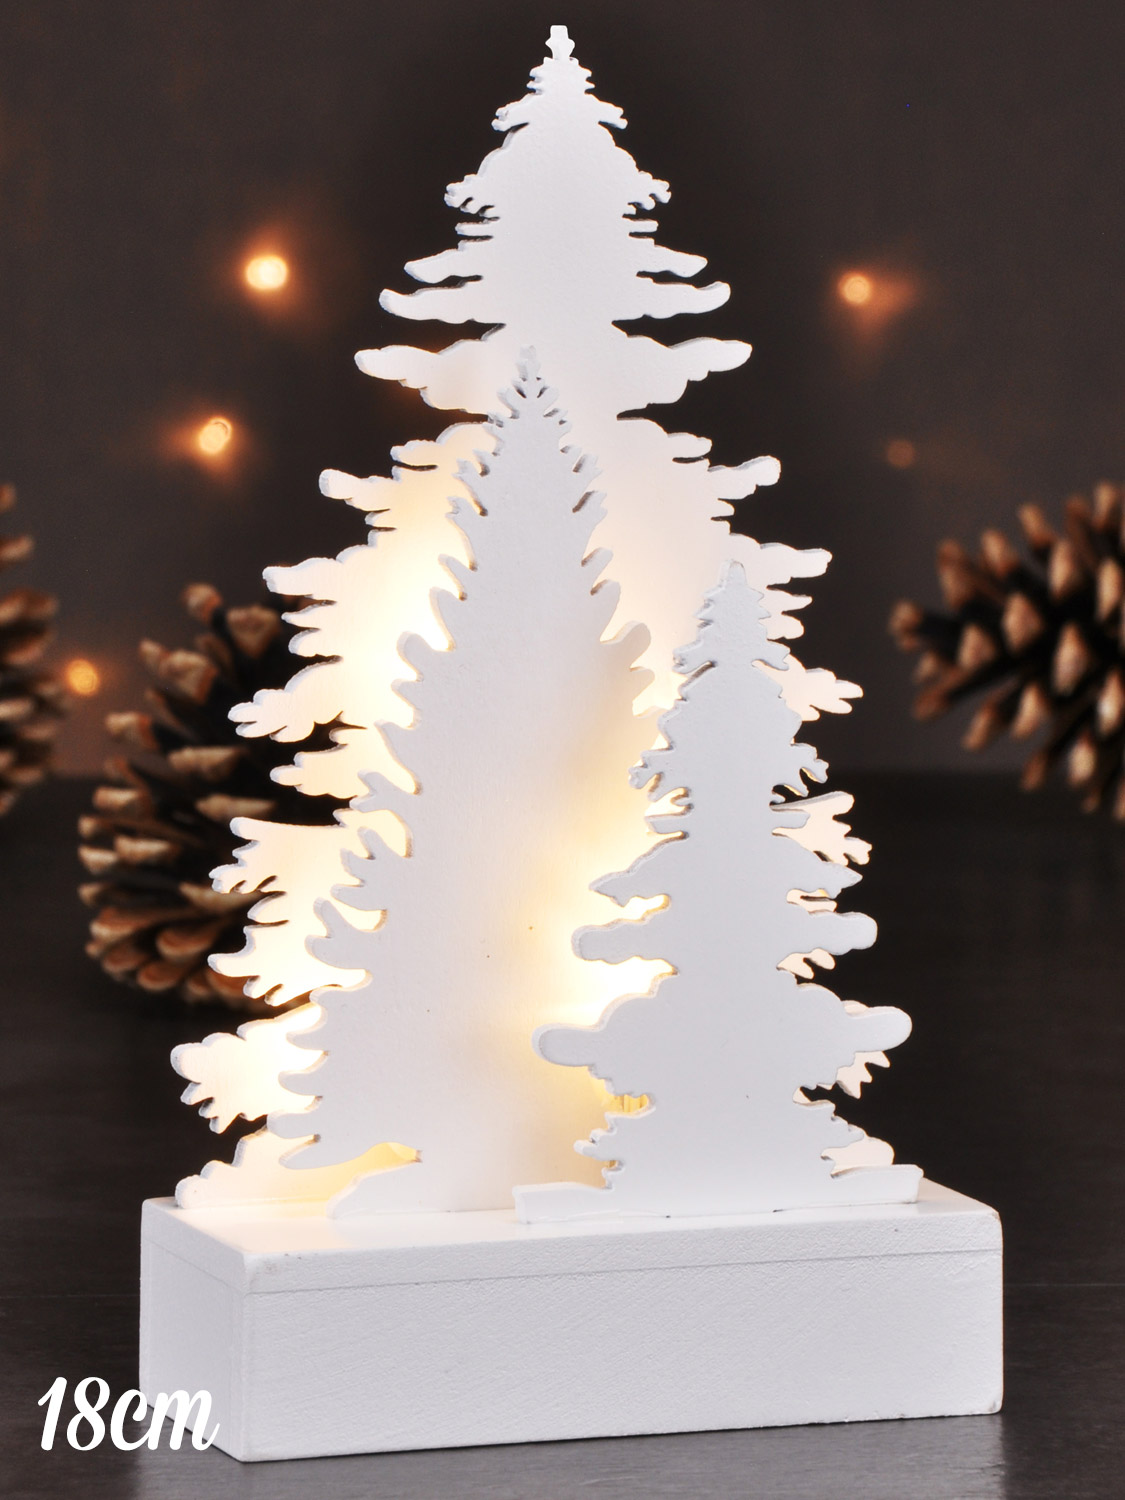 Wooden White Light Up Decorations Christmas LED Ornament Xmas ...